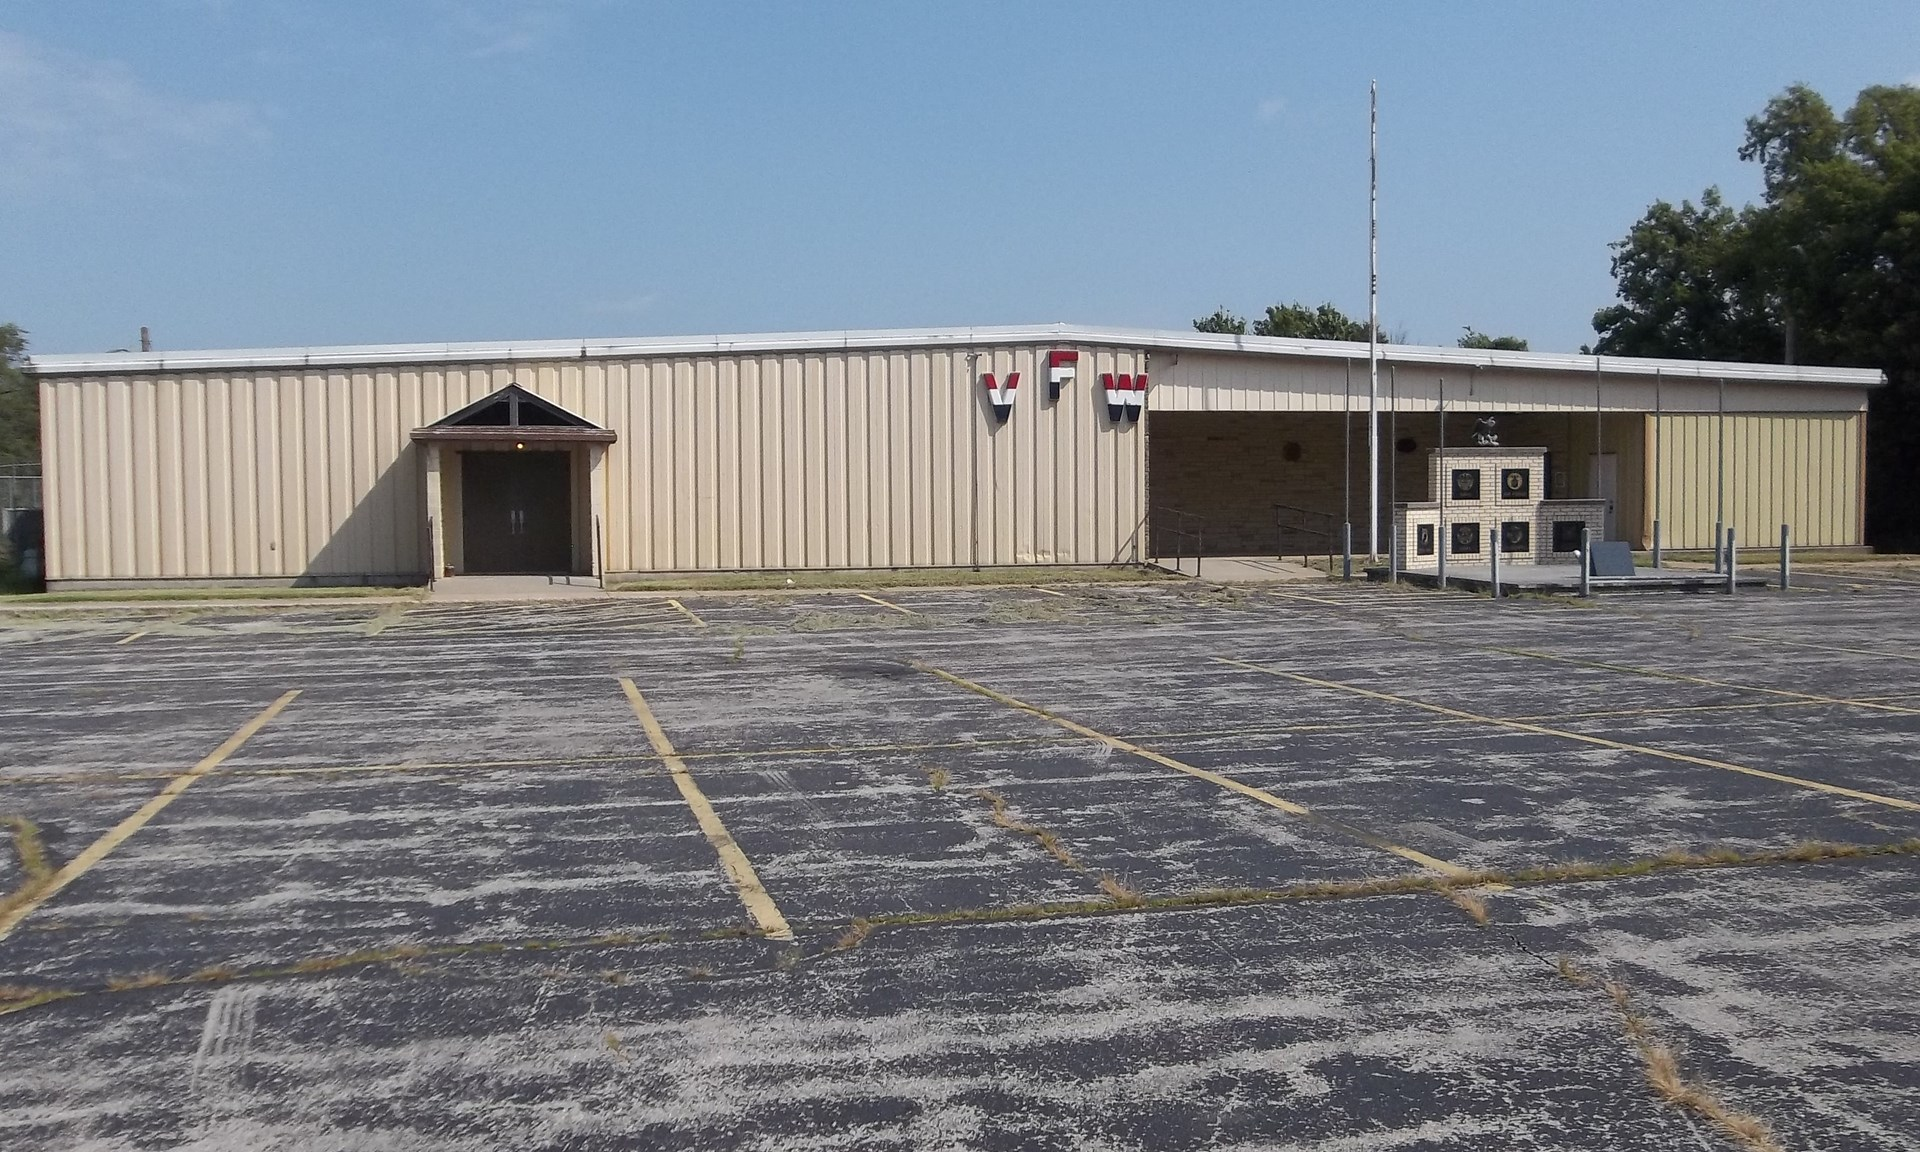 Commercial Building with acreage for Sale in Chanute KS